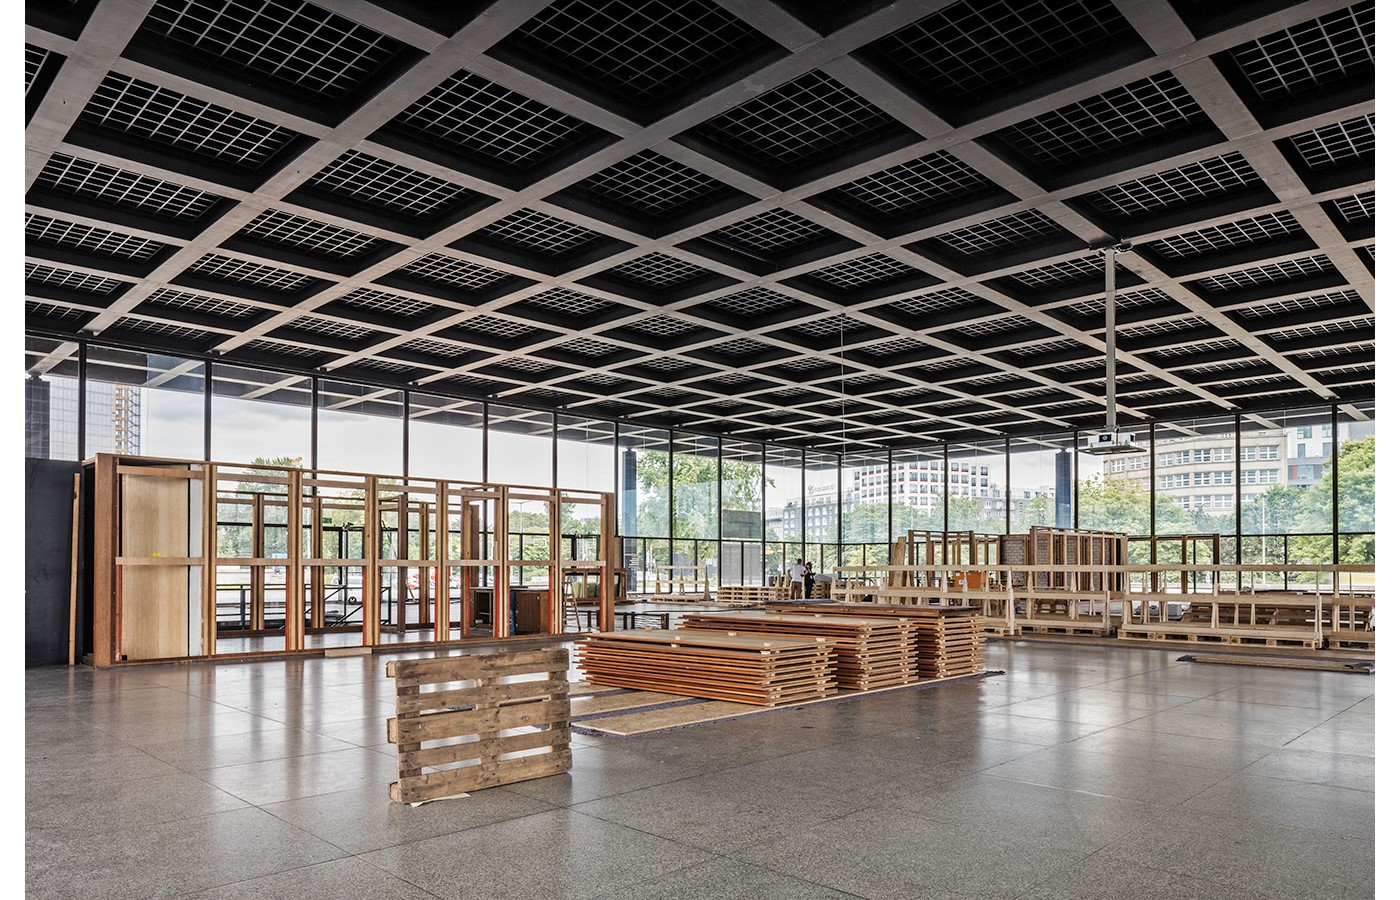 Mies Van der Rohe's Renovated New National Gallery in Berlin revealed through images by David Chipperfield - Sheet10